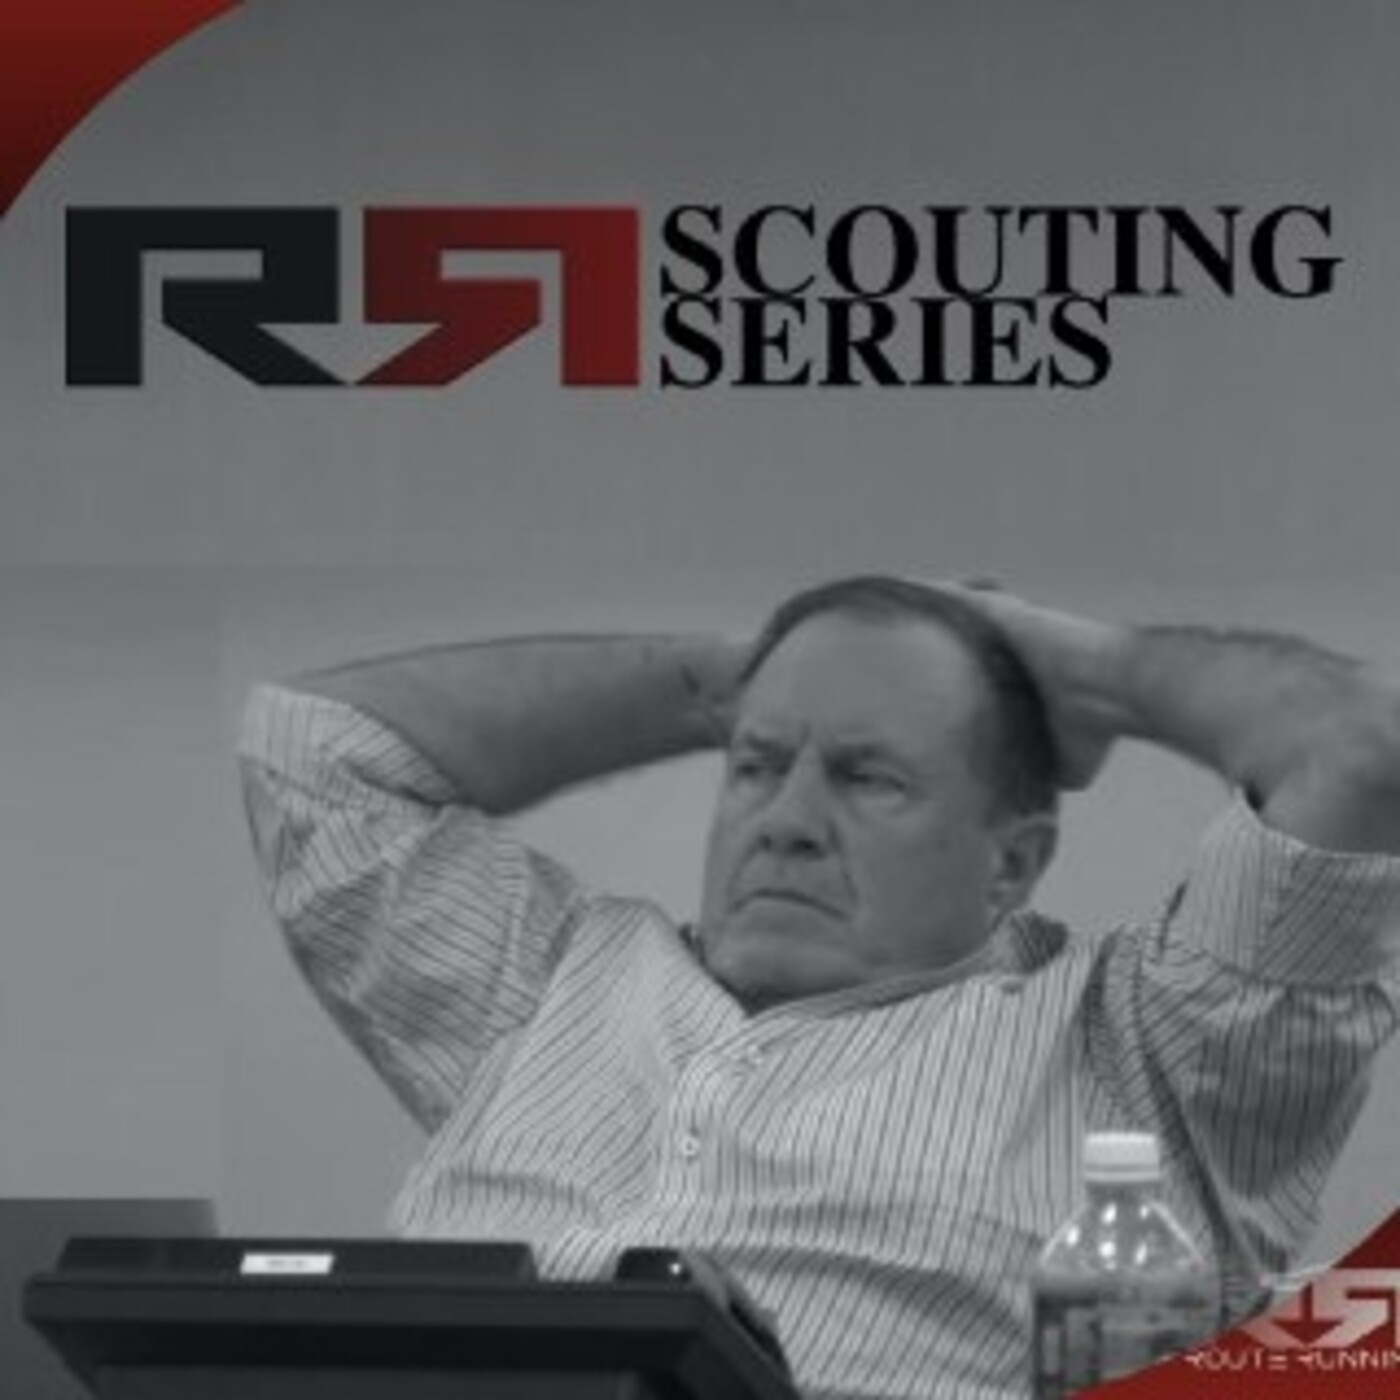 RR Scouting Series QBs: Jamie Newman, Kyle Trask & Brock Purdy